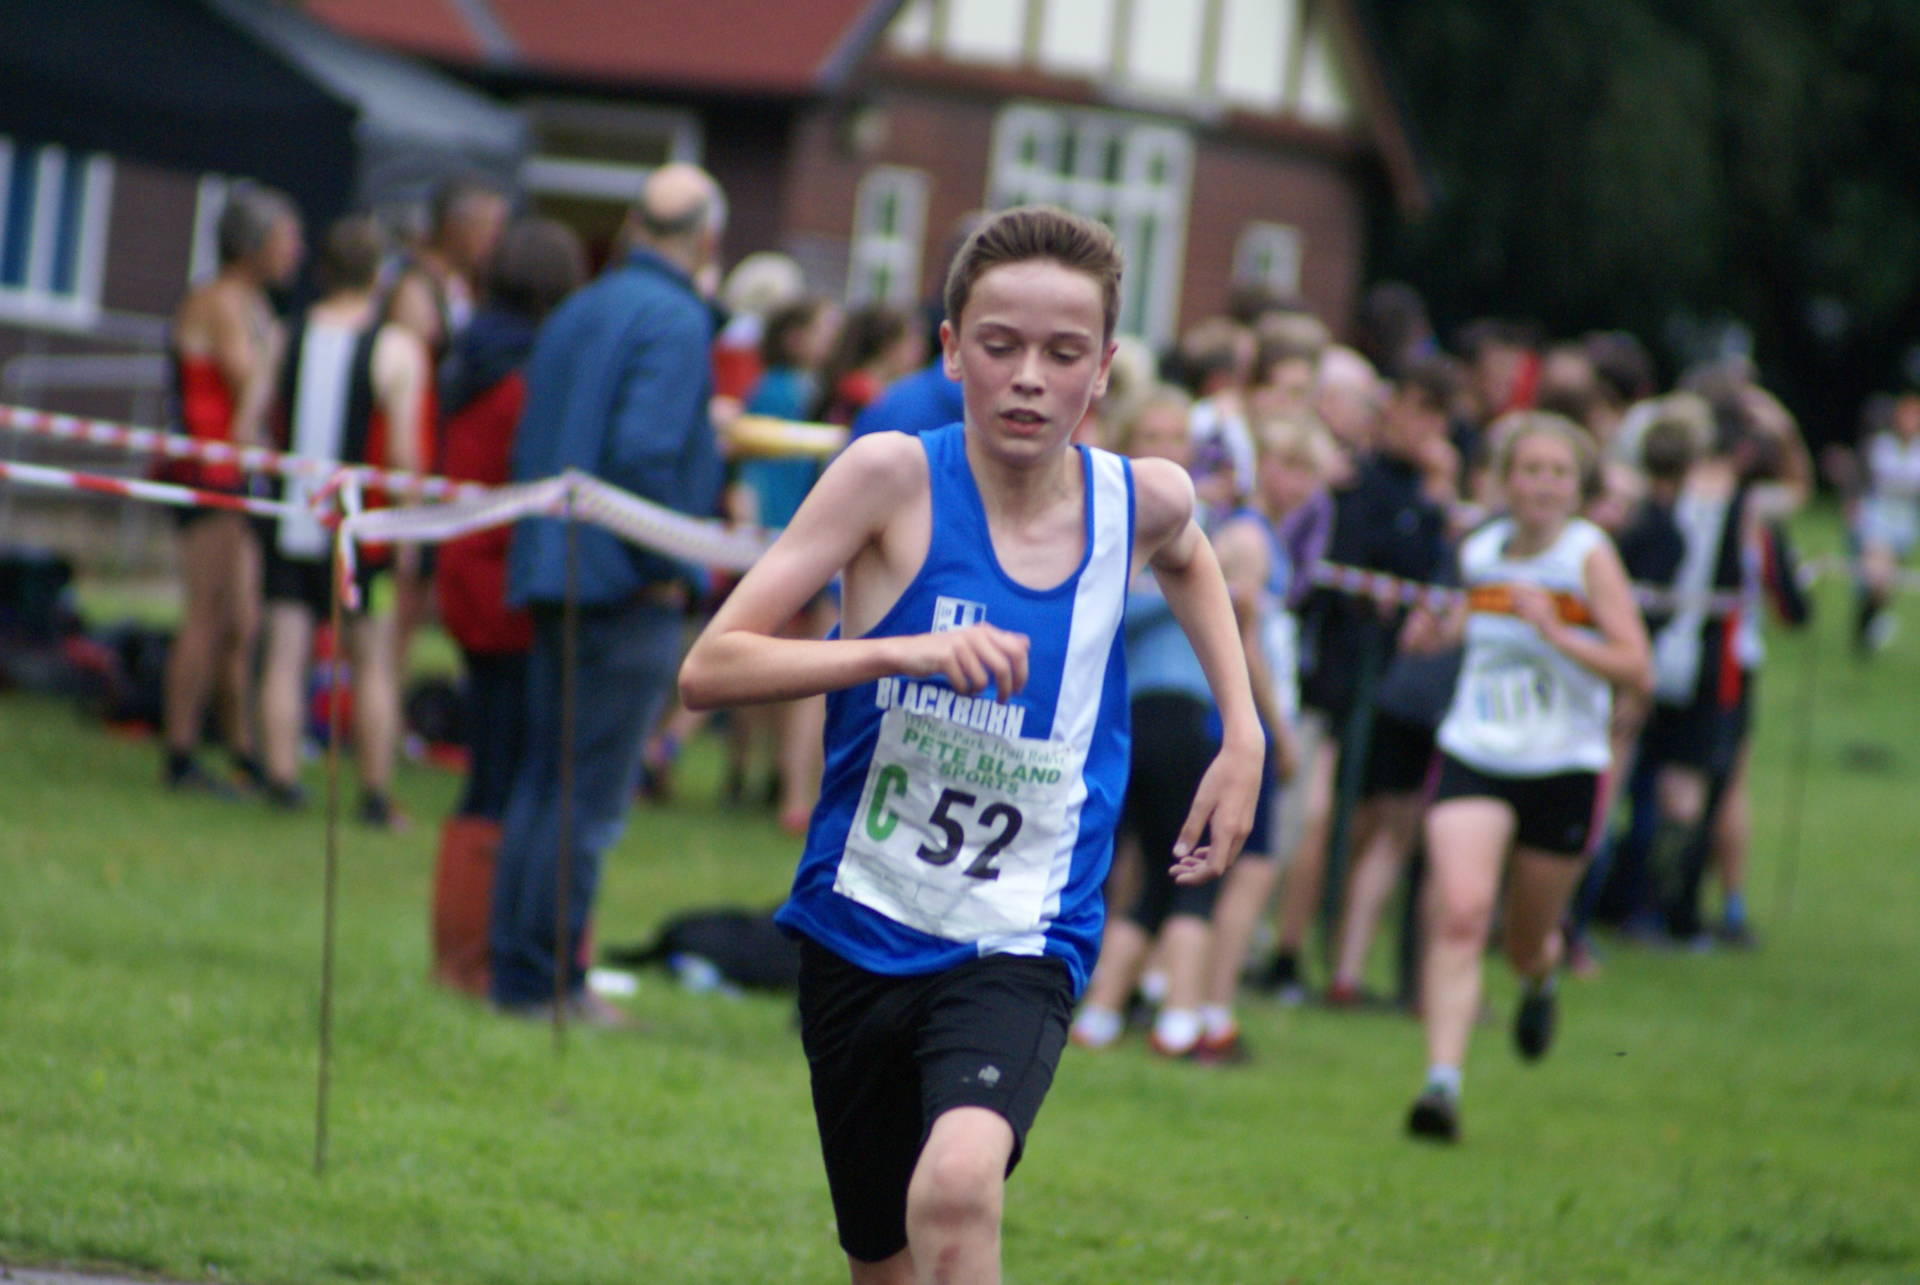 Matt Fastest Junior Leg at Witton Trail Relays – – Tony at BMAF Championships –  – Tom wins Short Course at Darren Holloway Memorial Race – – BOFRA Championships